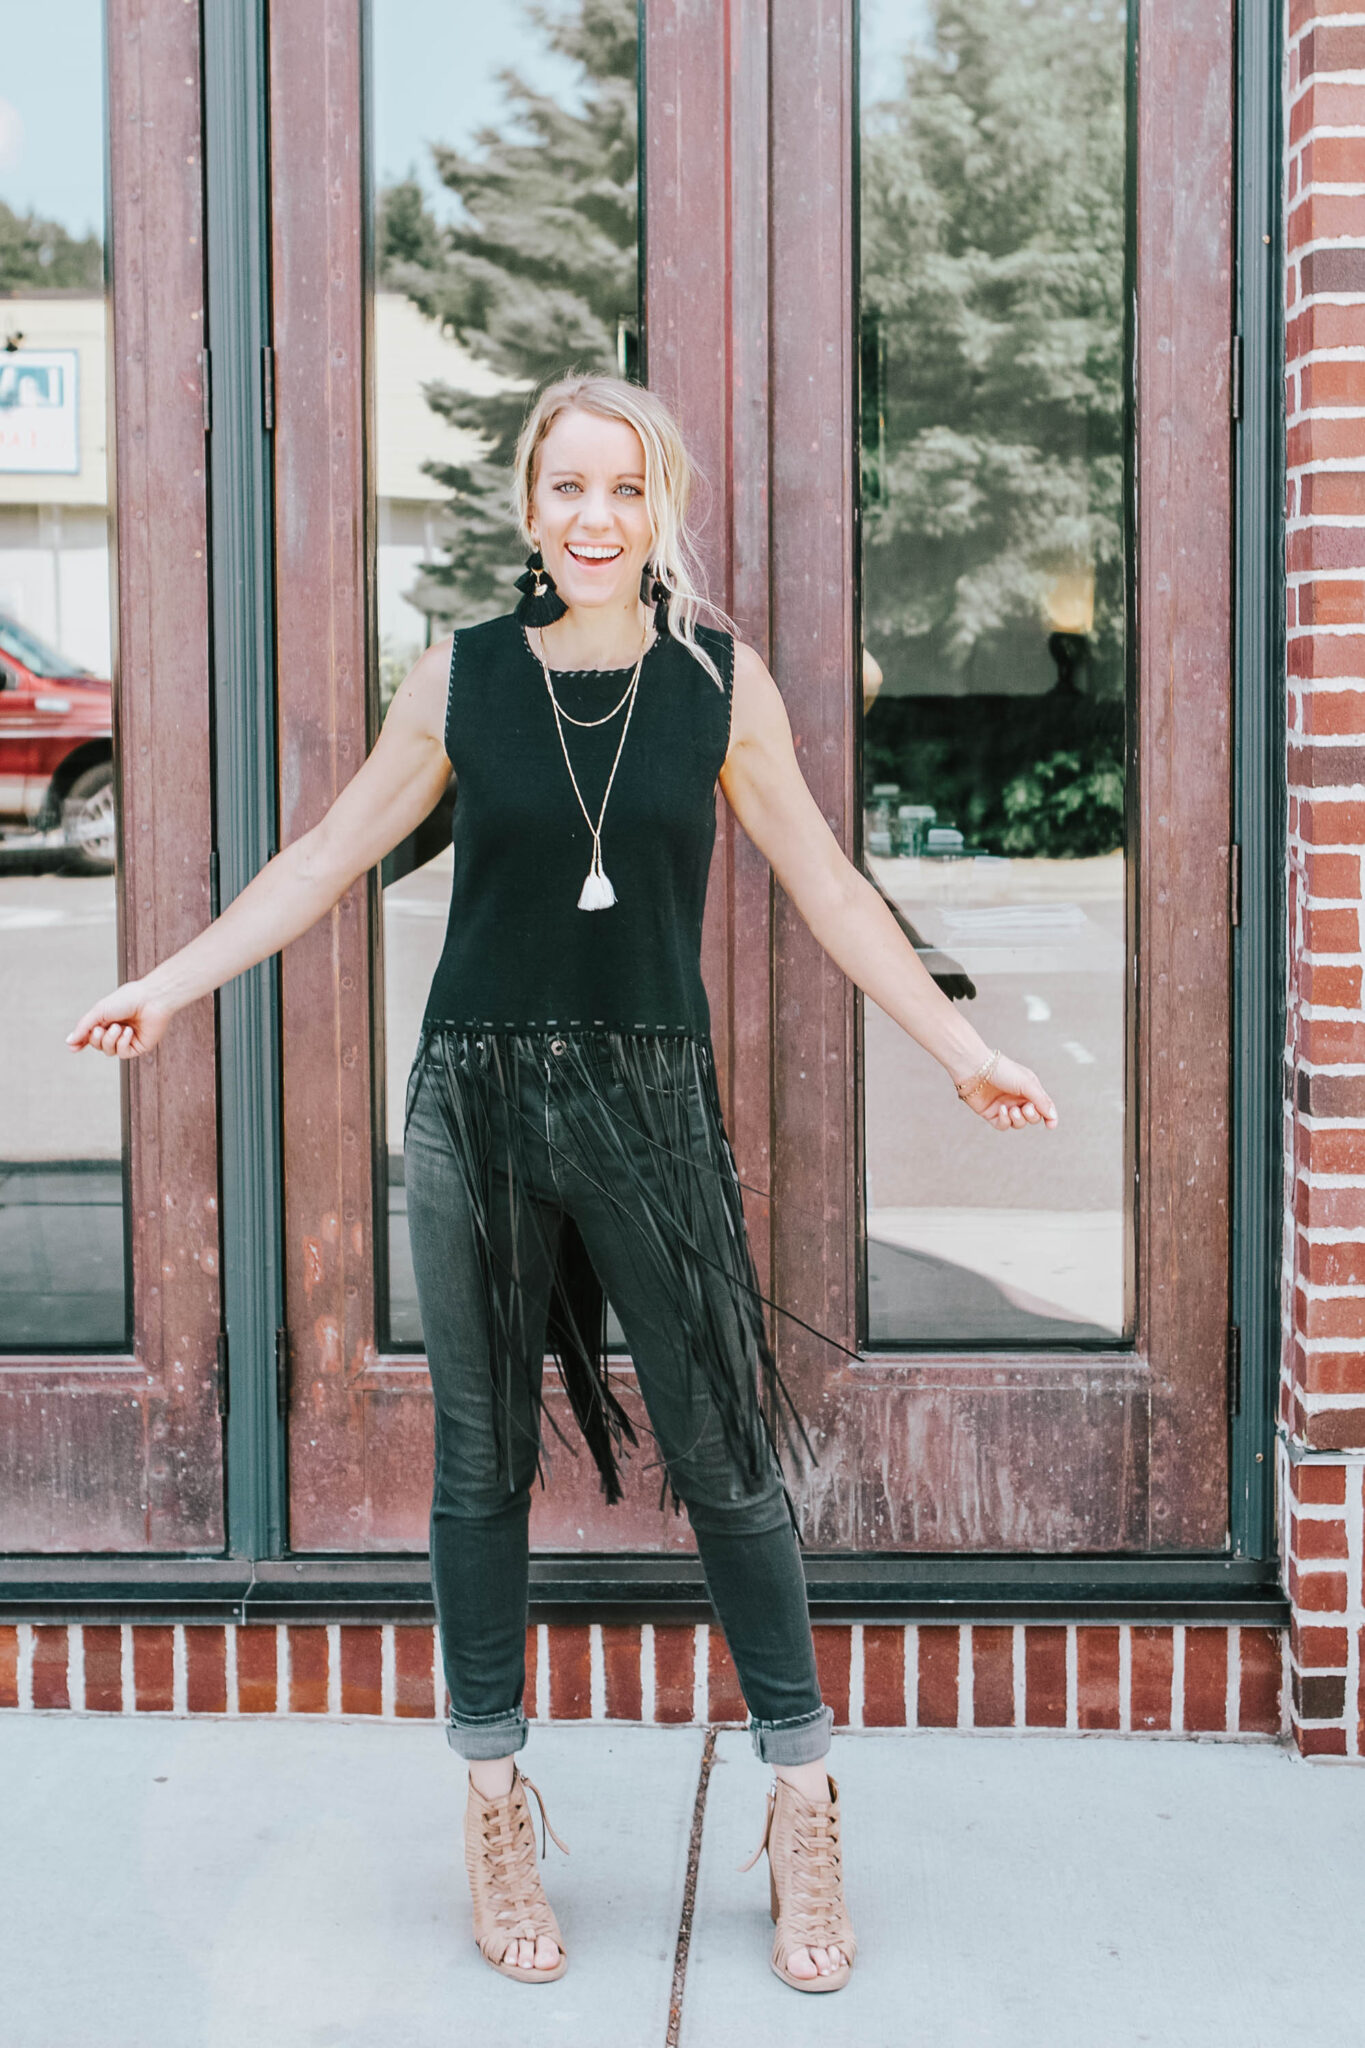 7 questions on how to find your personal style - black fringe tops with tassle earrings and grey skinny jeans